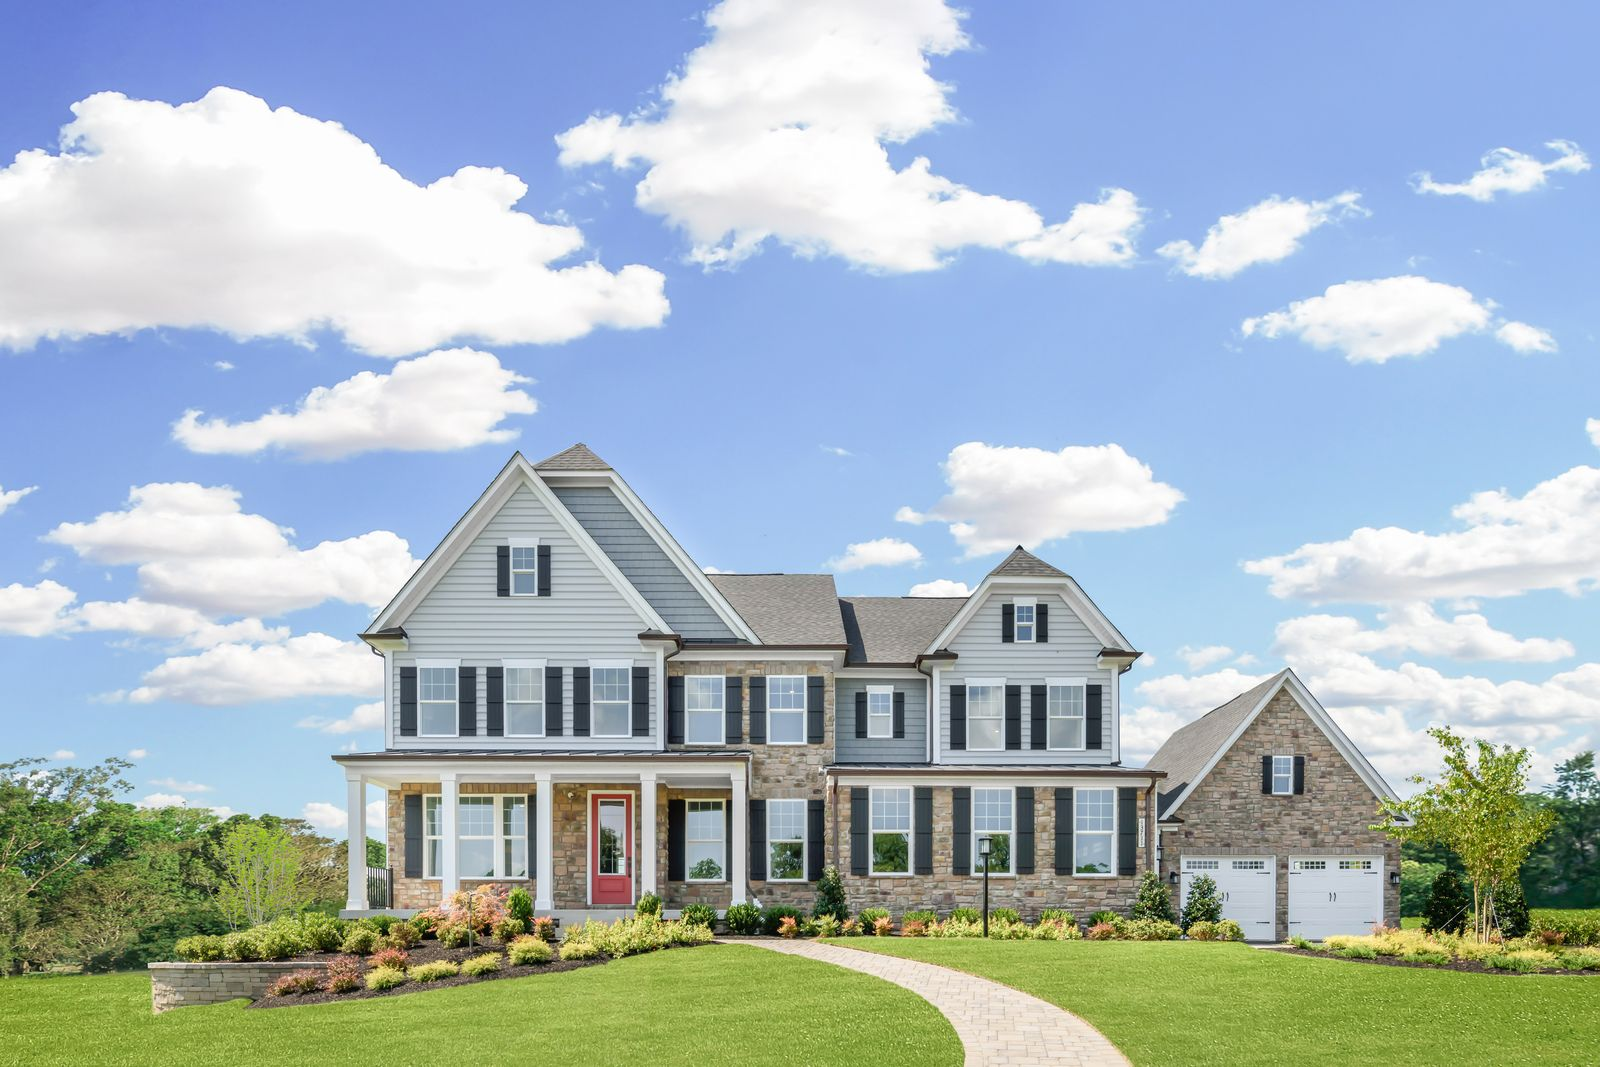 EXQUISITE ESTATE HOMES ARE COMING SOON:At the crossroads of Fleetwood and Route 50 will soon be Hartland, the region's most anticipated new home community. NV homes are arriving this June from$1 million - $1.5 million.